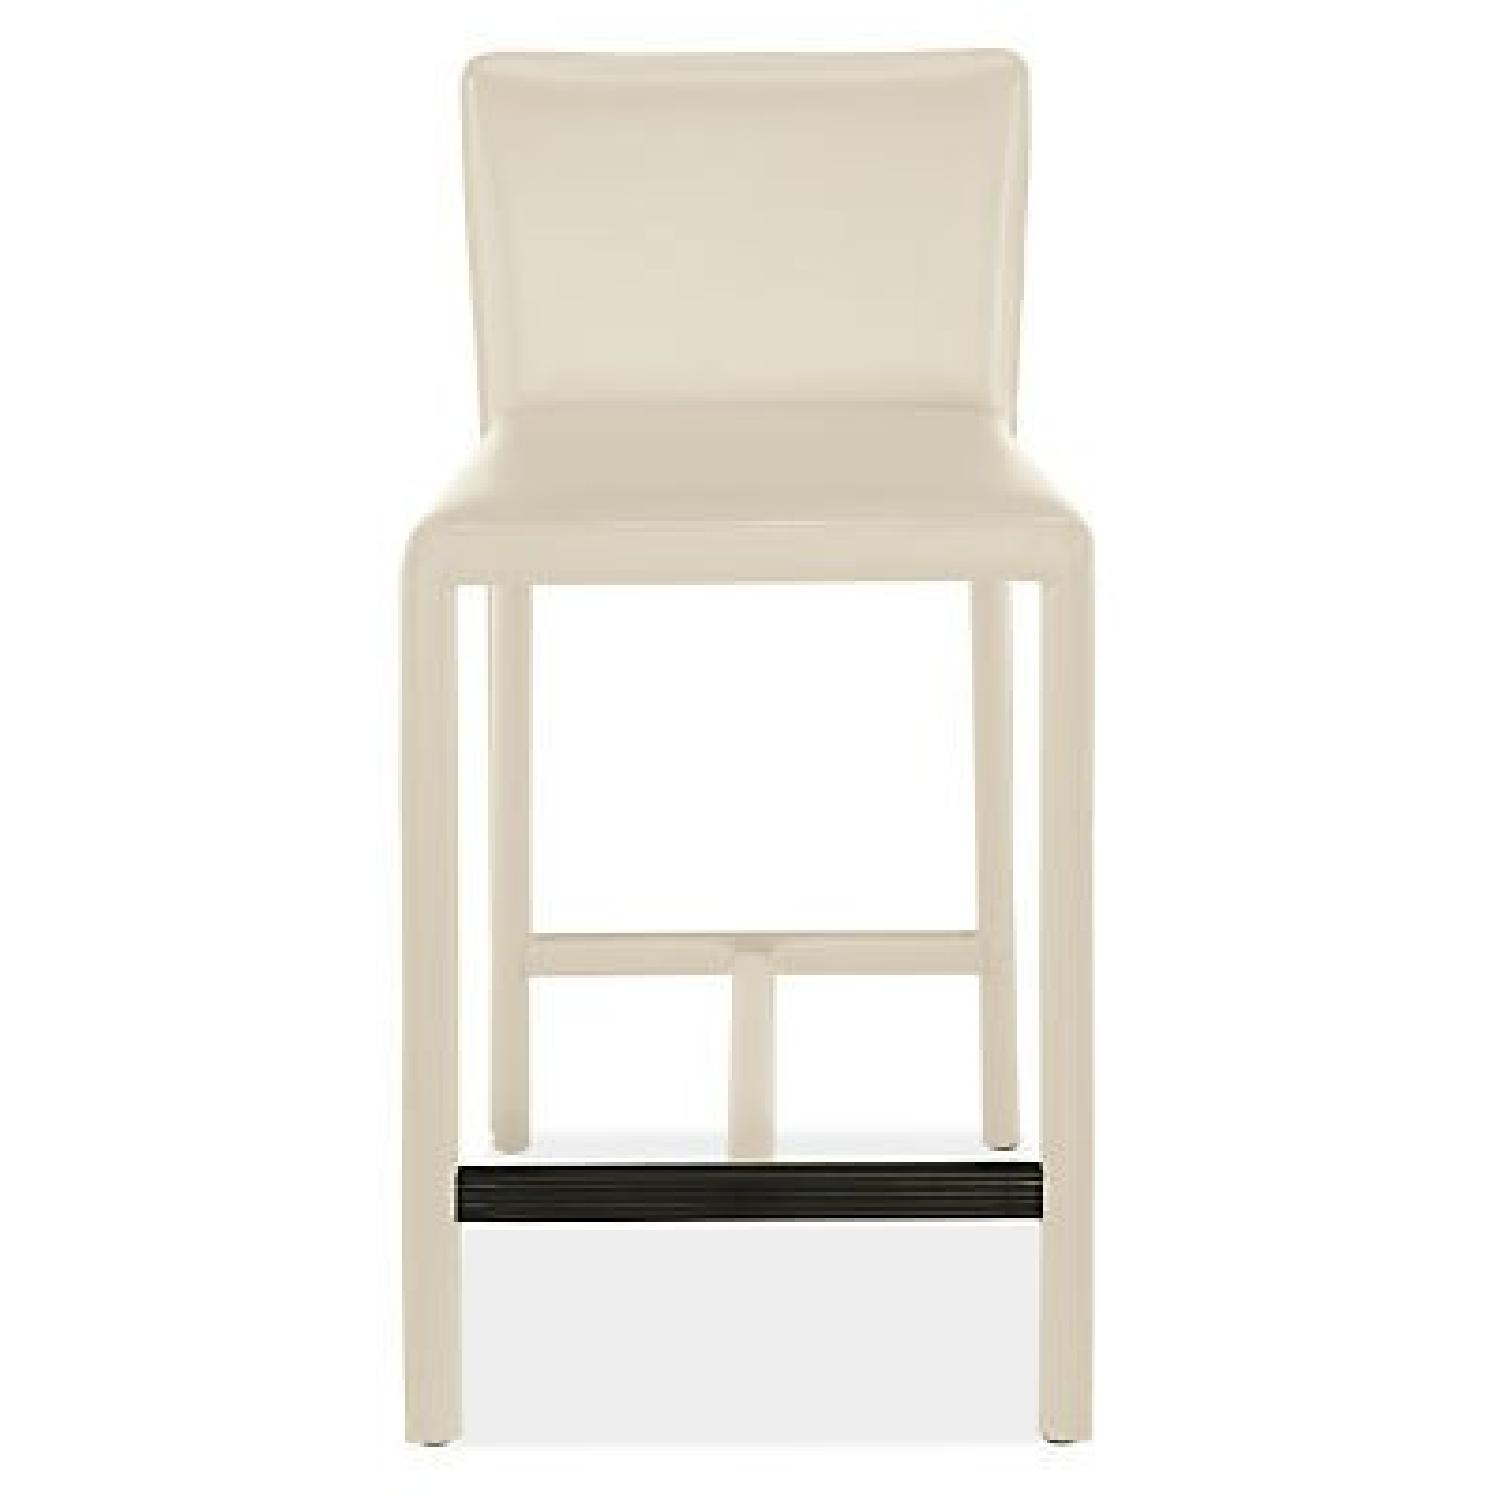 Room & Board Sava Counter Stool in Ivory Leather